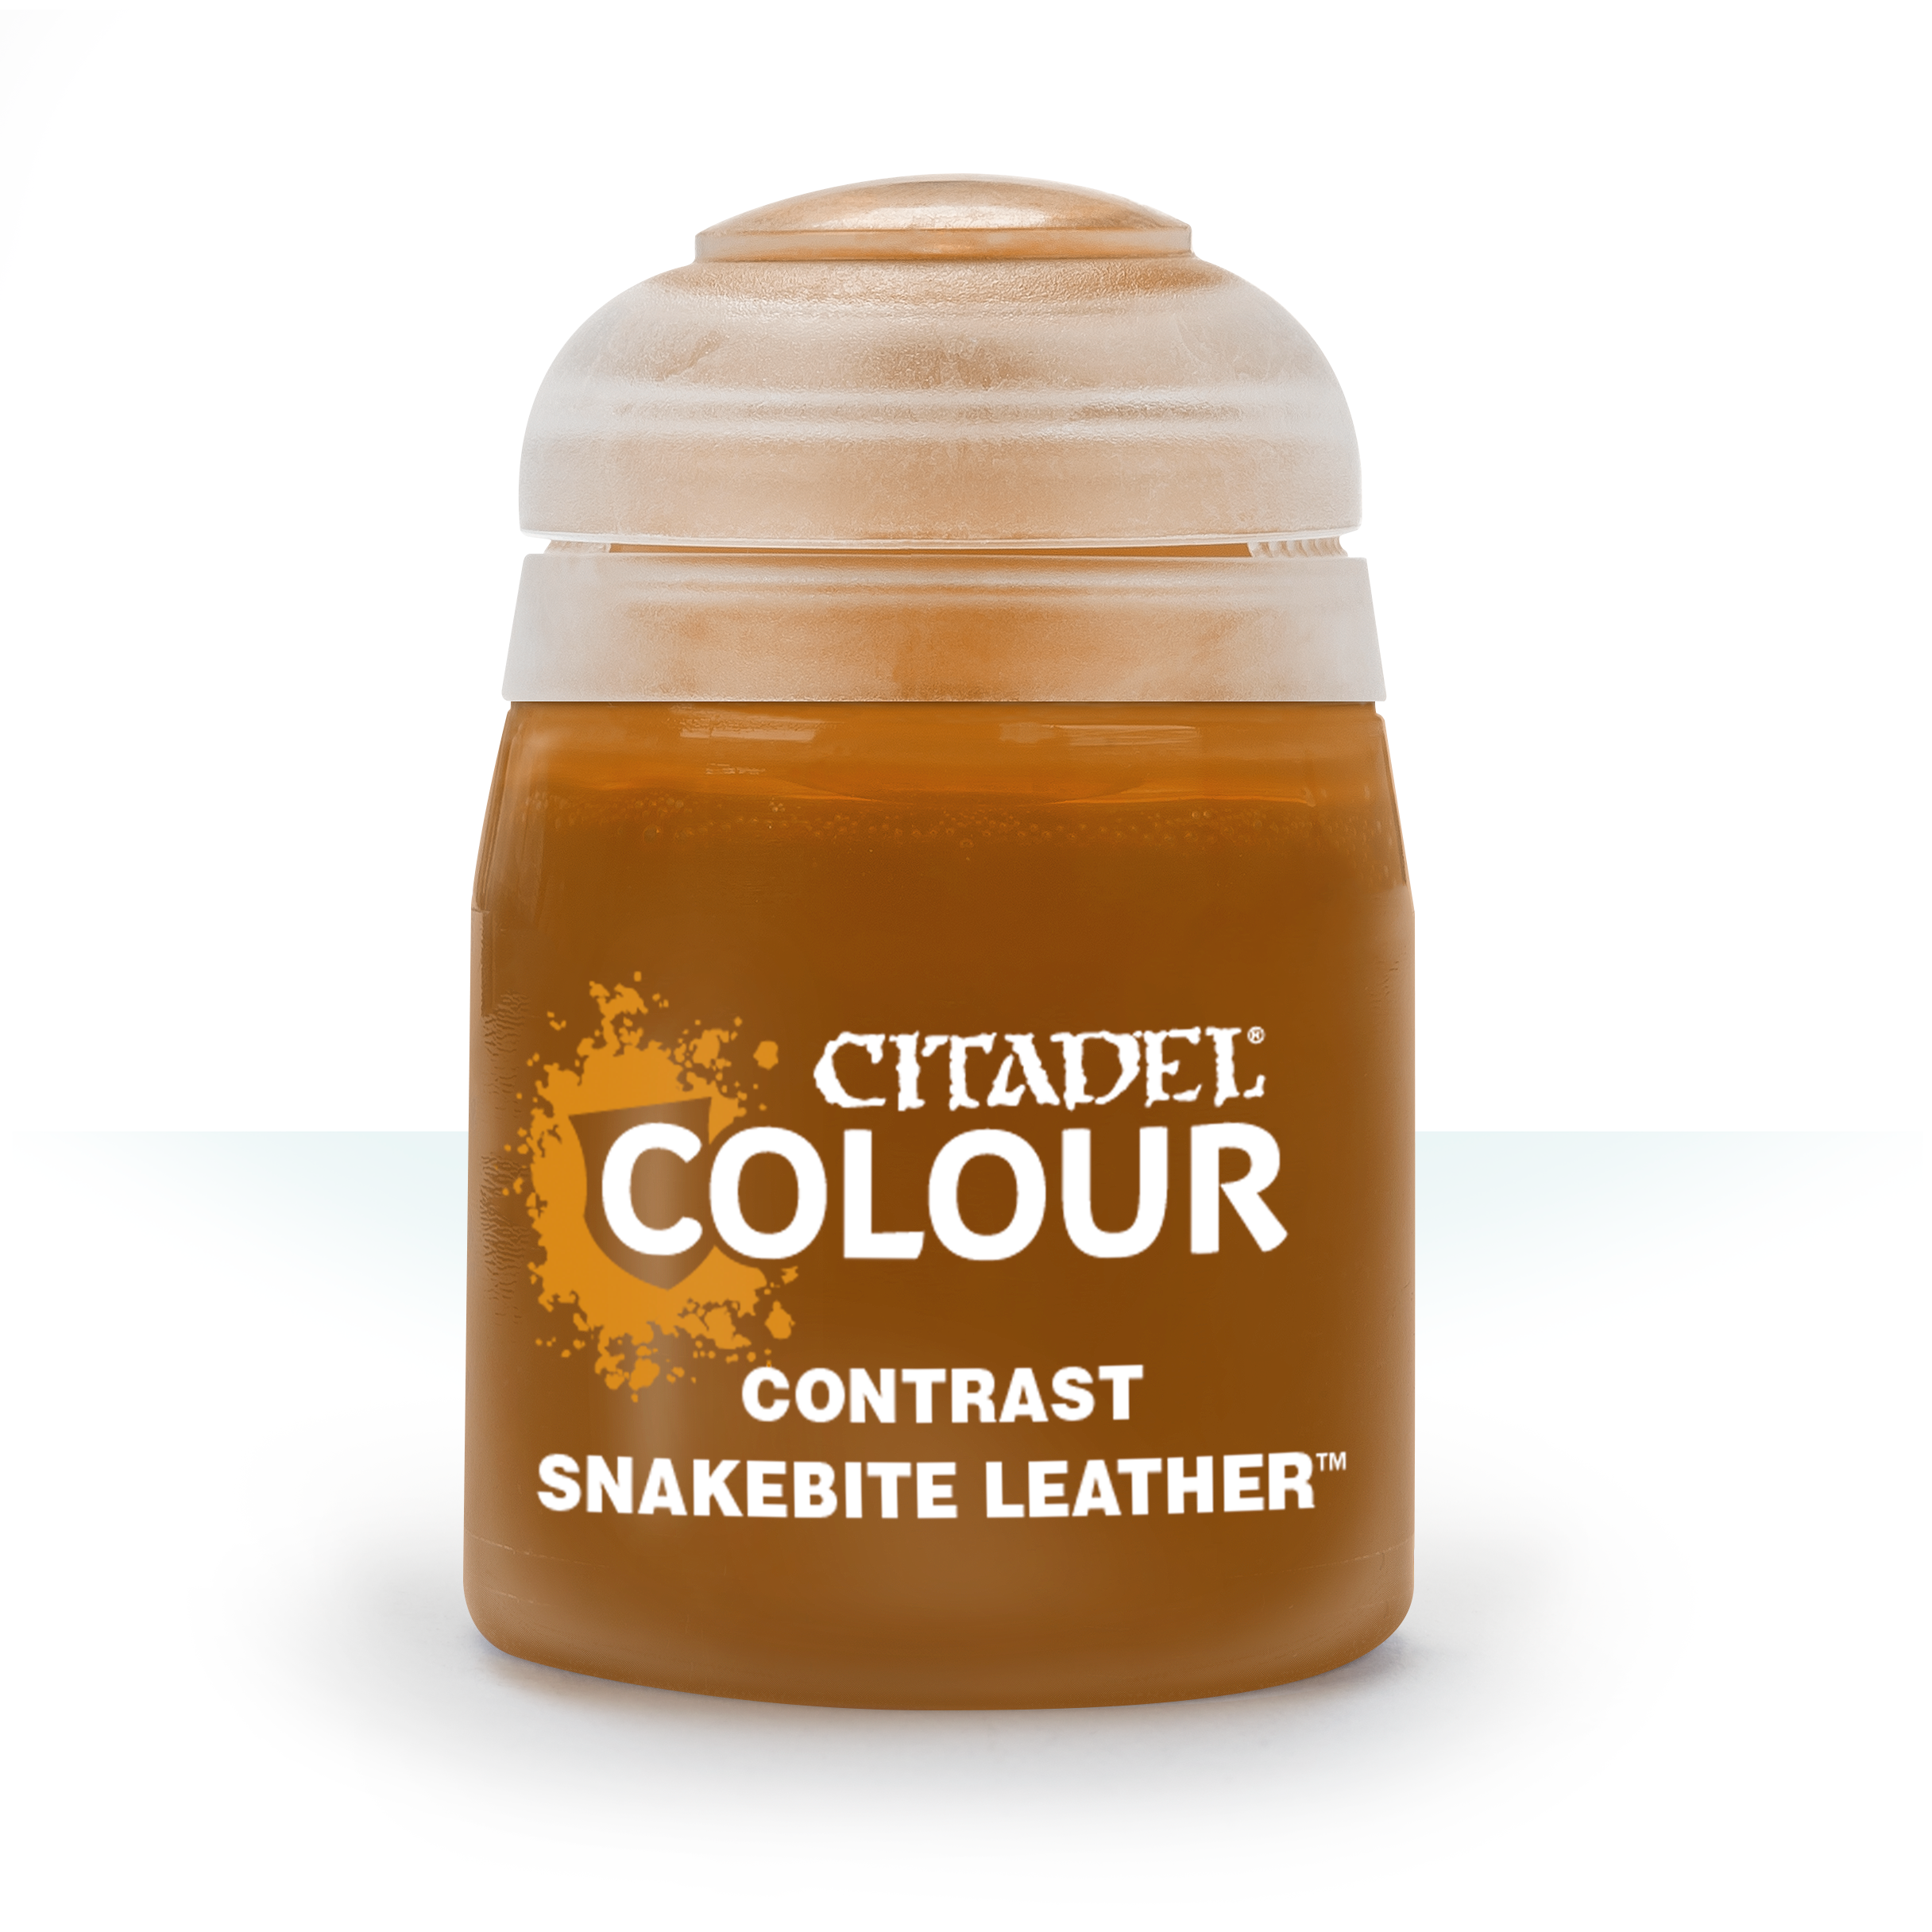 Citadel Contrast - Snakebite Leather